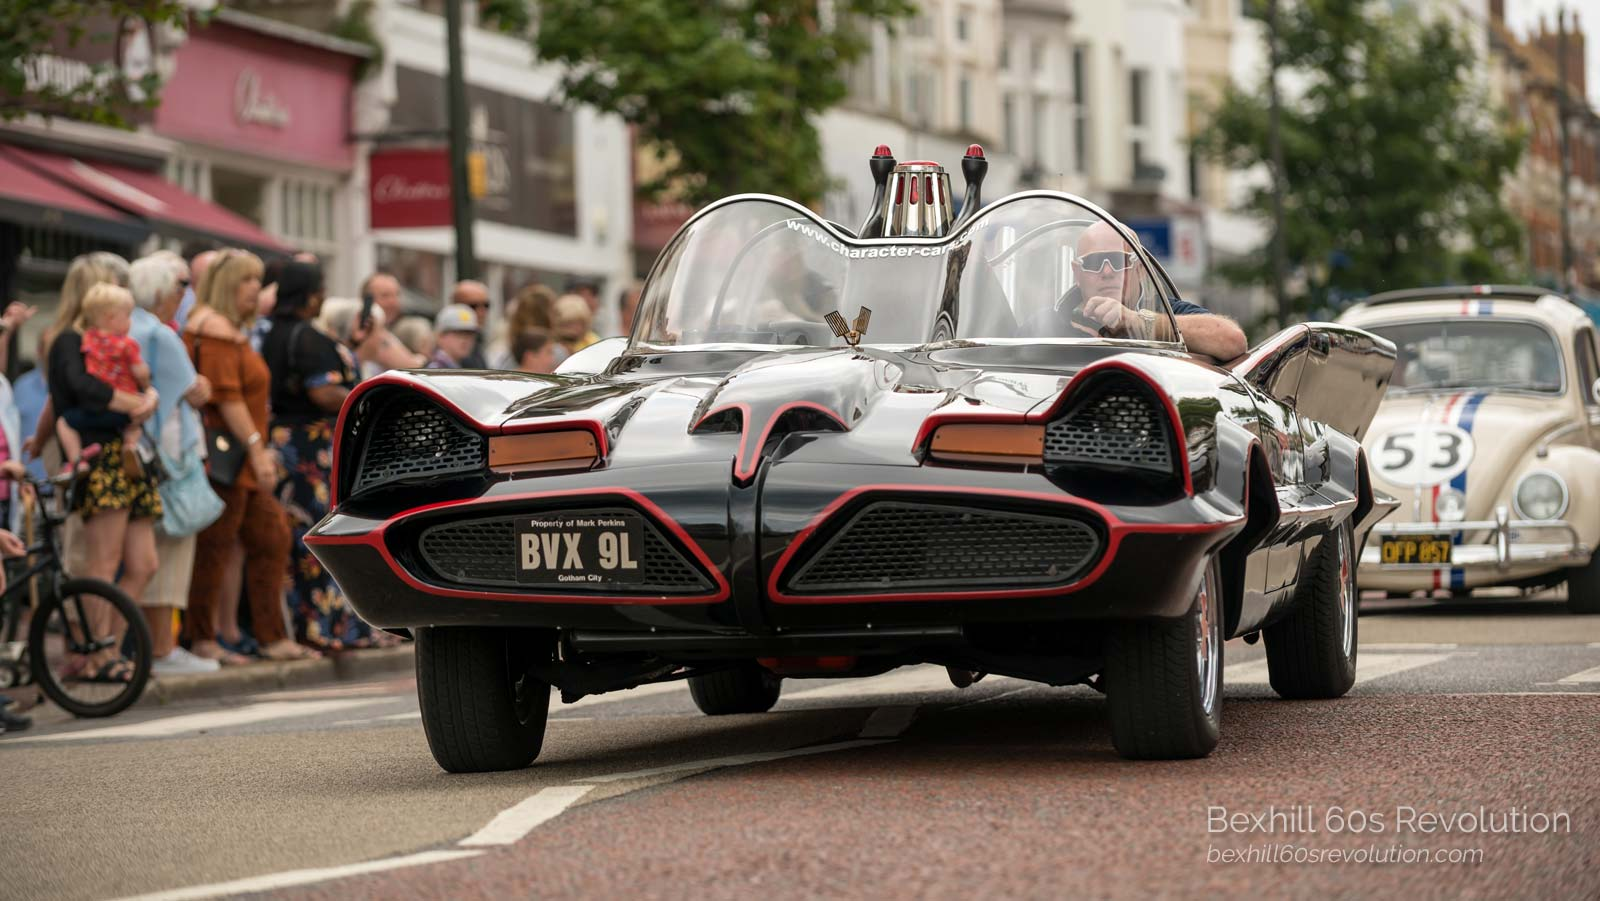 the Batmobile and Herbie at the Bexhill 60s Revolution